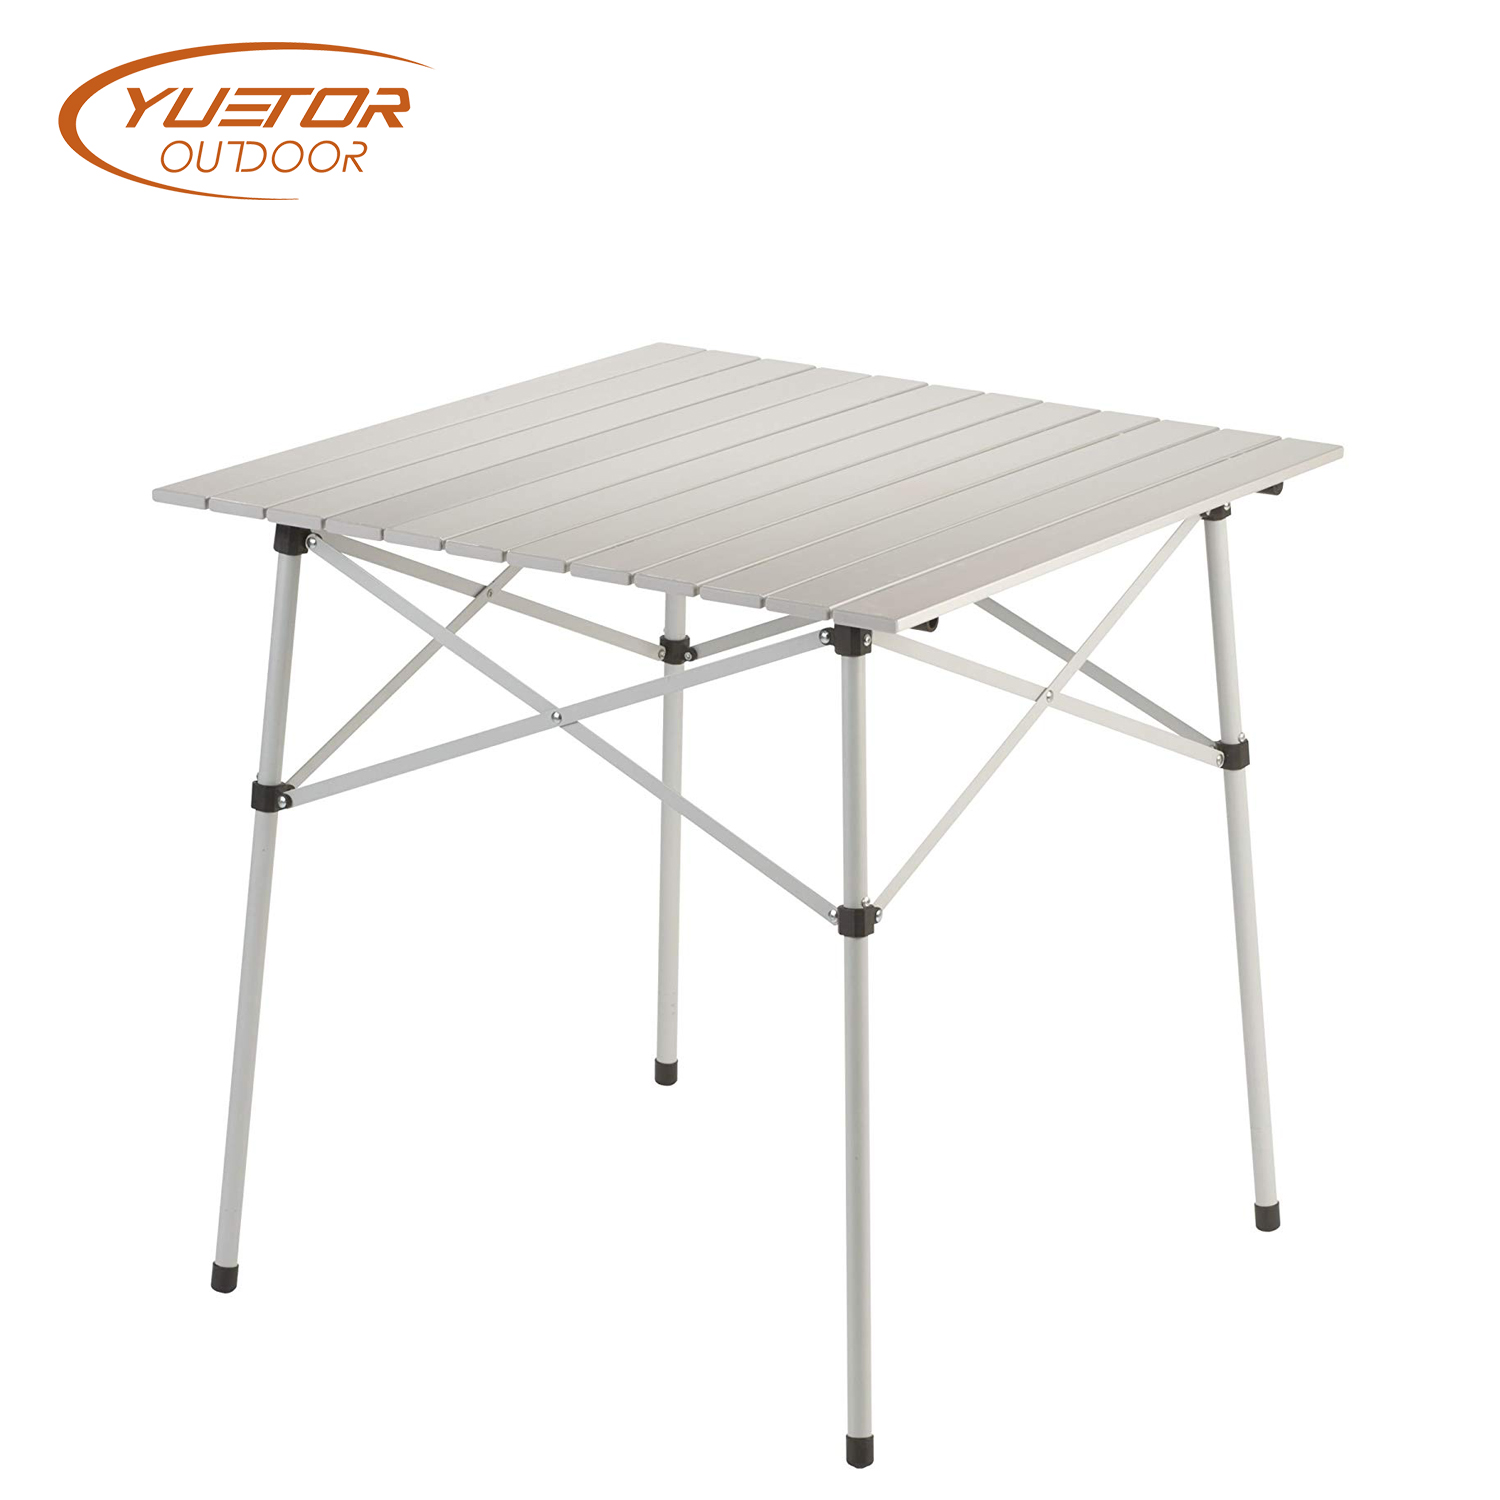 Lightweight Portable Road Aluminum Folding Camping Table (2)